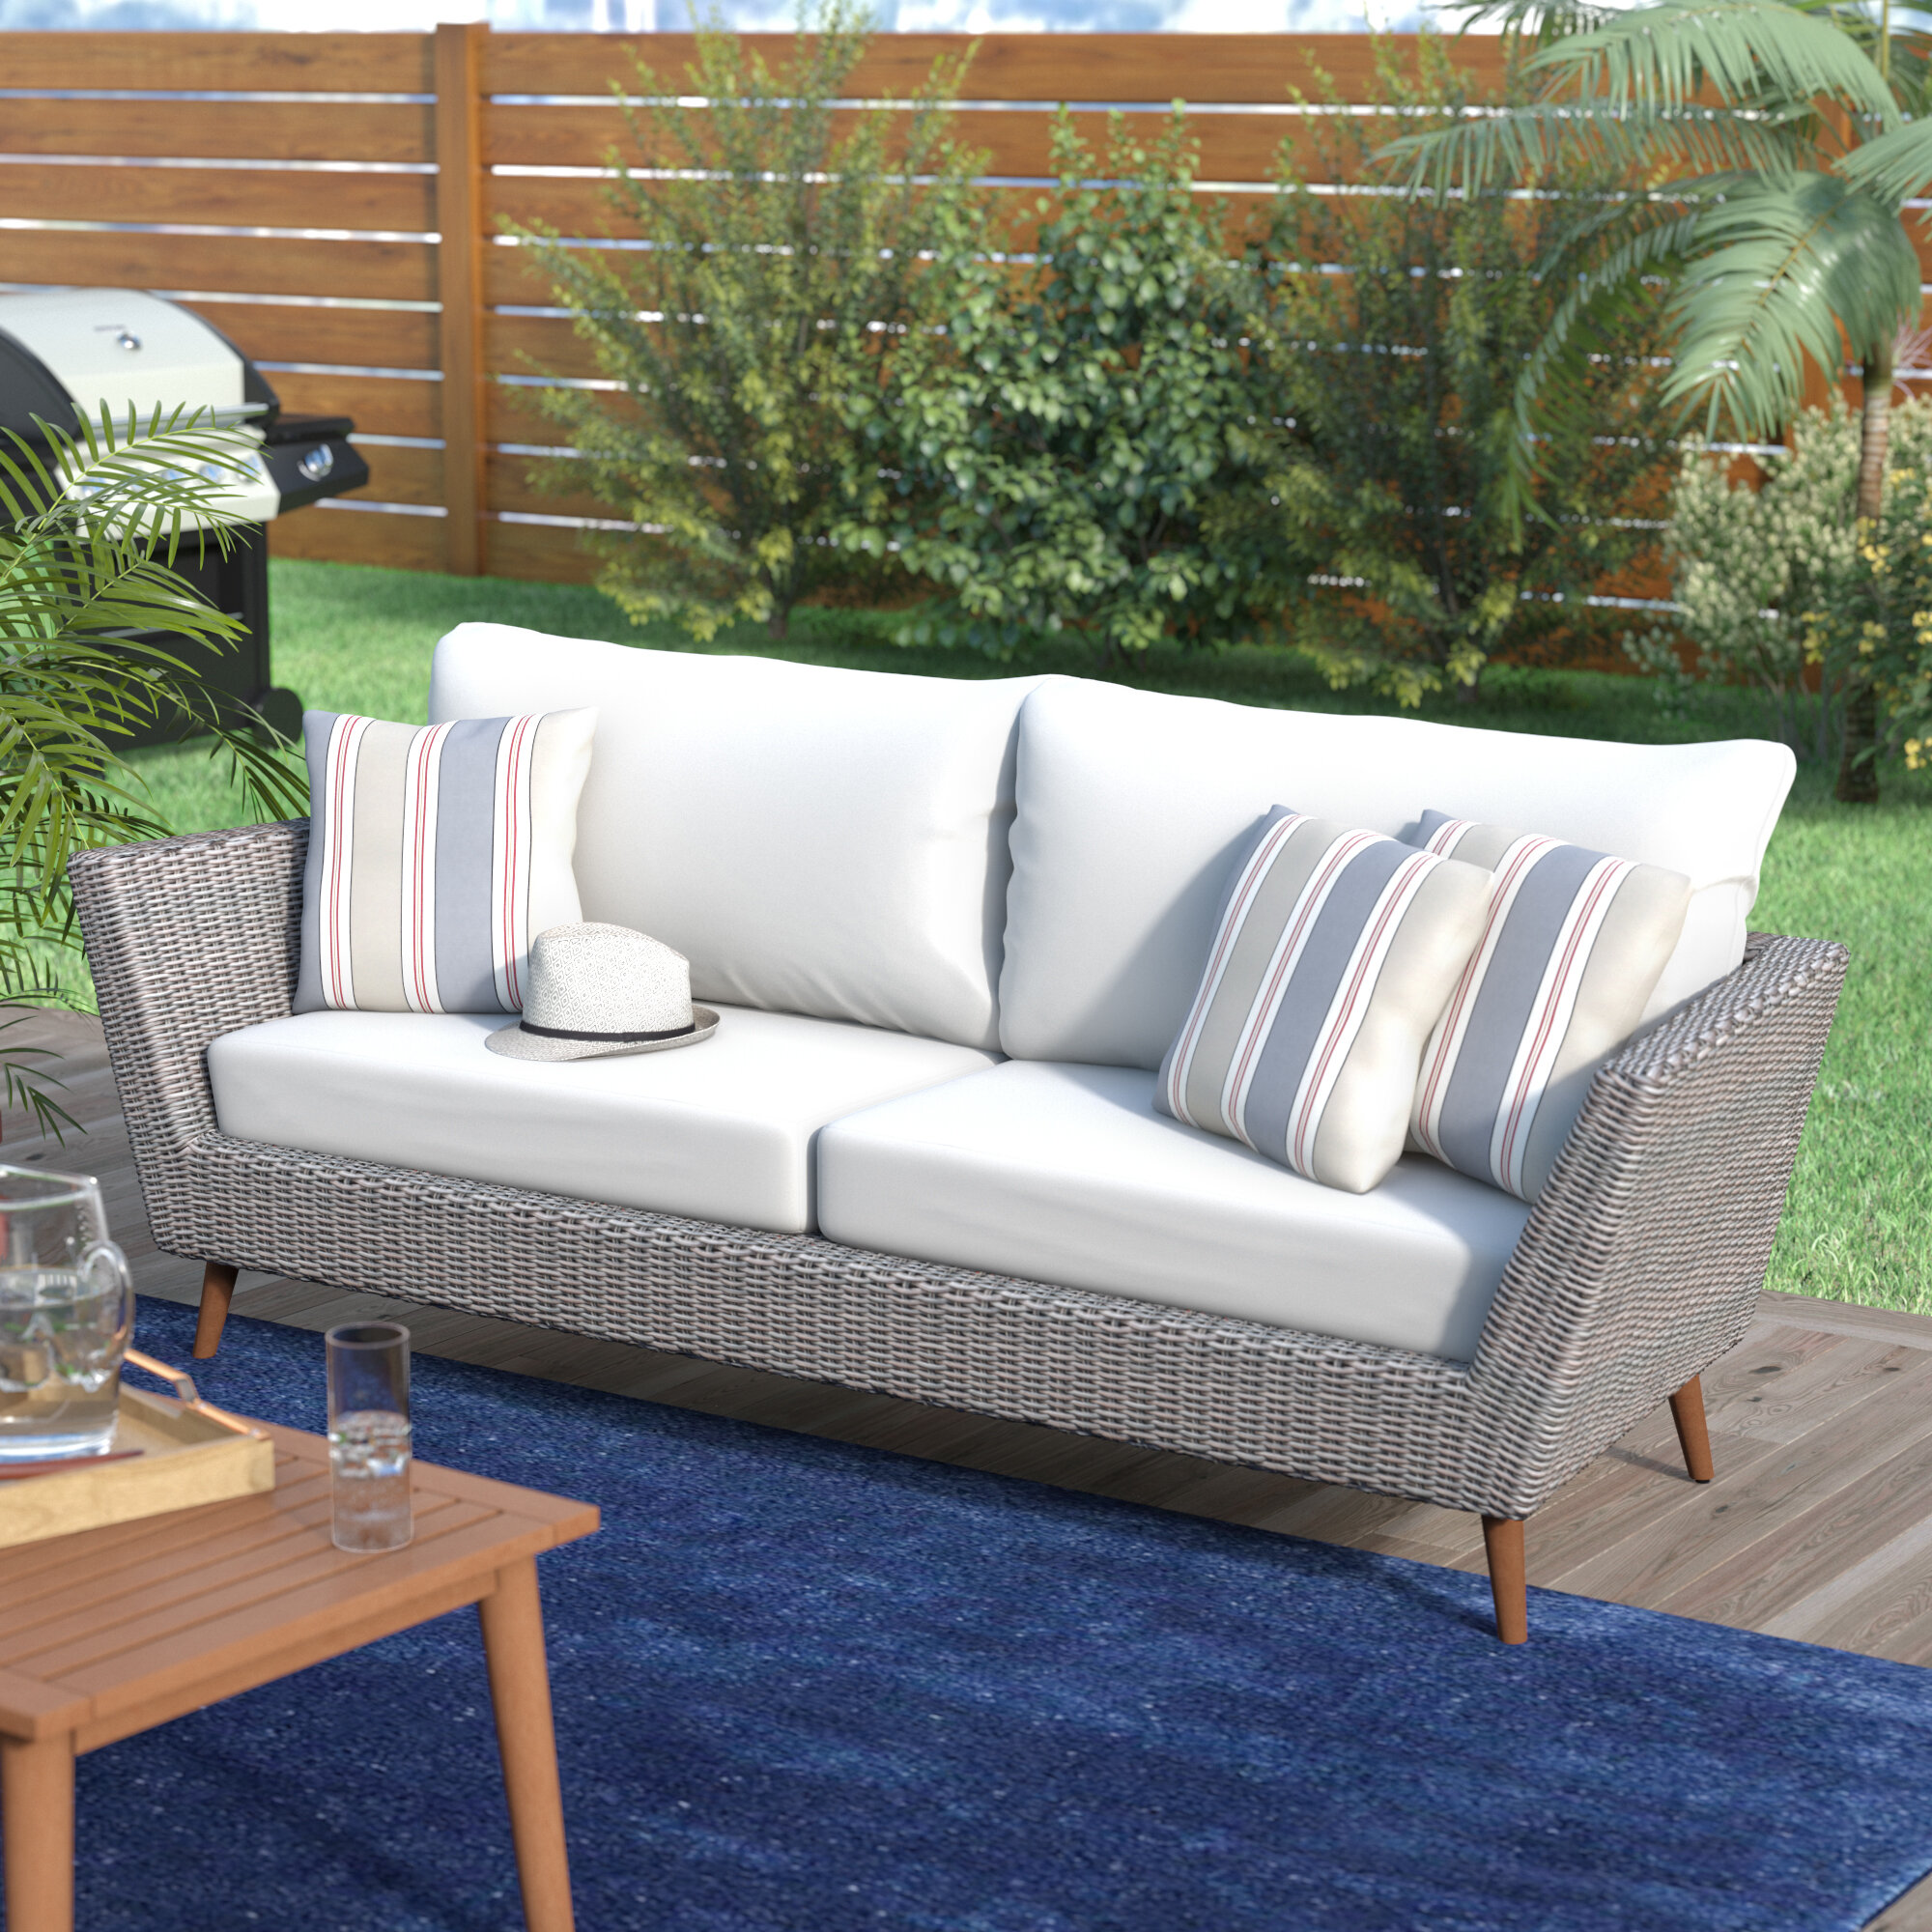 Langley Street Newbury Patio Sofa with Cushions & Reviews | Wayfair